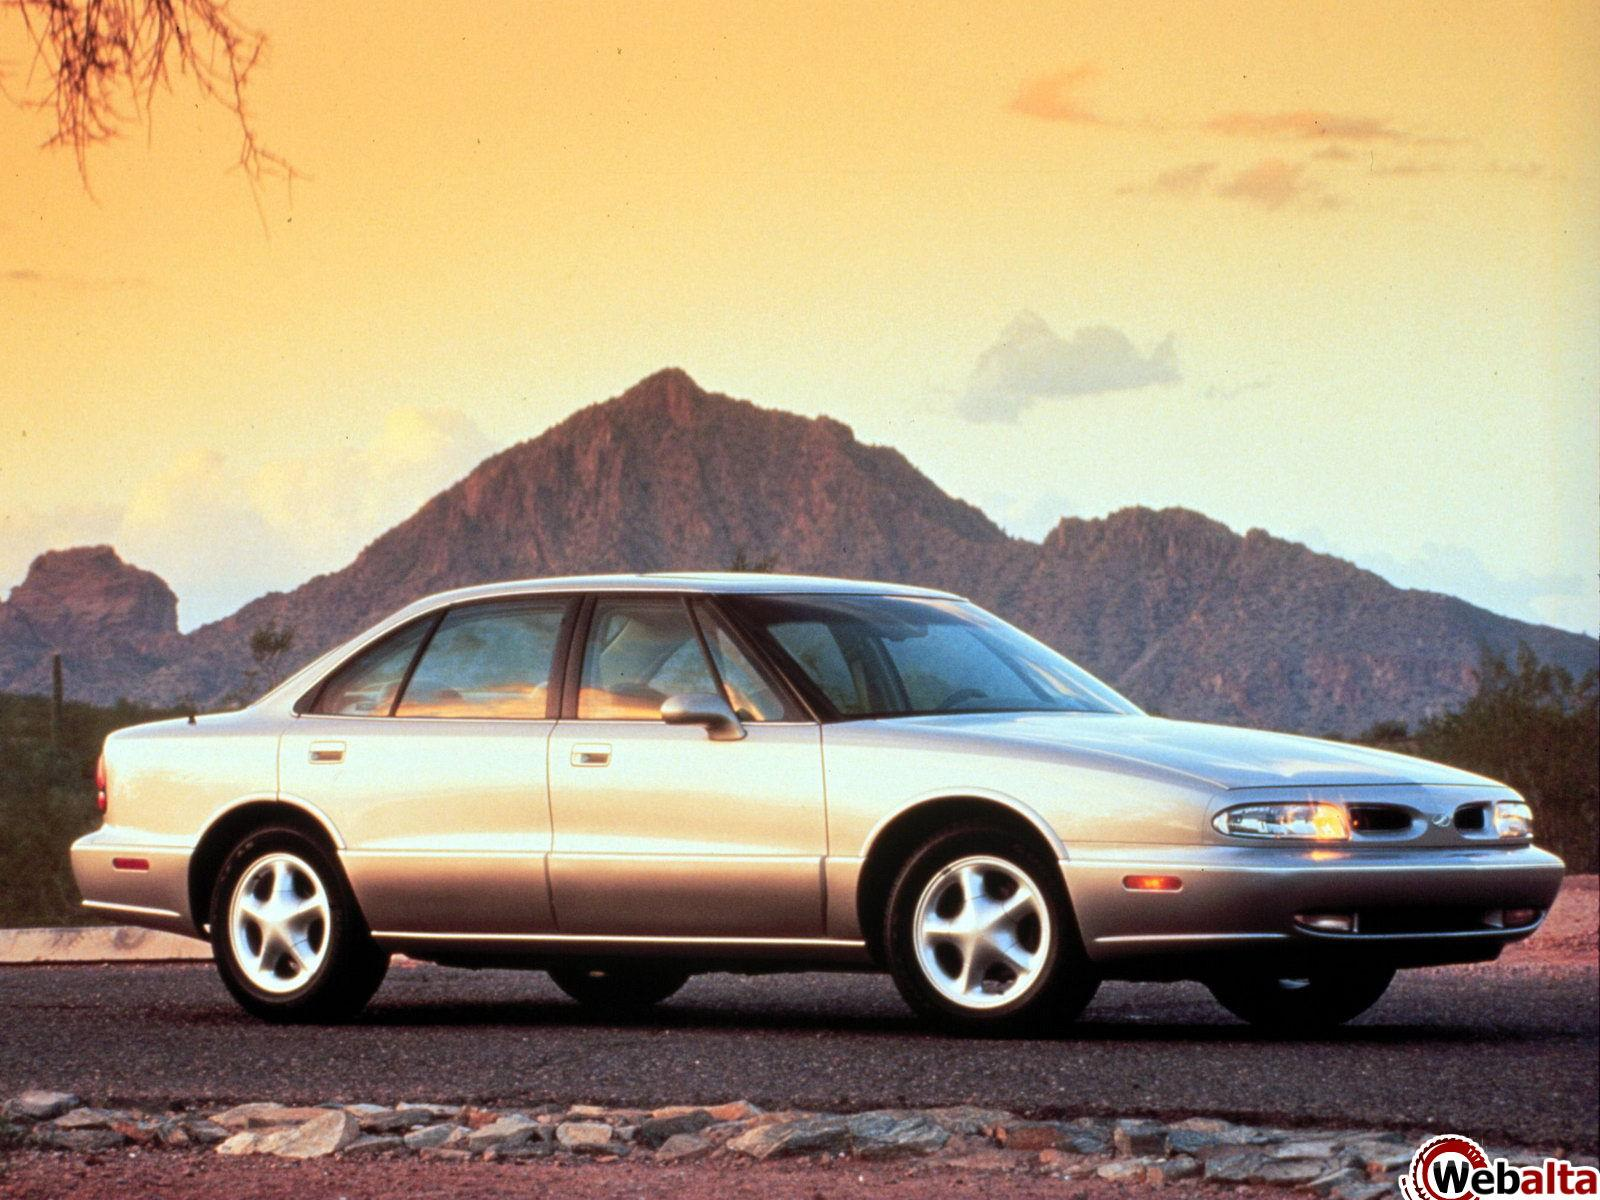 1997 Oldsmobile Lss Information And Photos Zombiedrive 2000 Mazda Millenia Wiring Diagram 800 1024 1280 1600 Origin